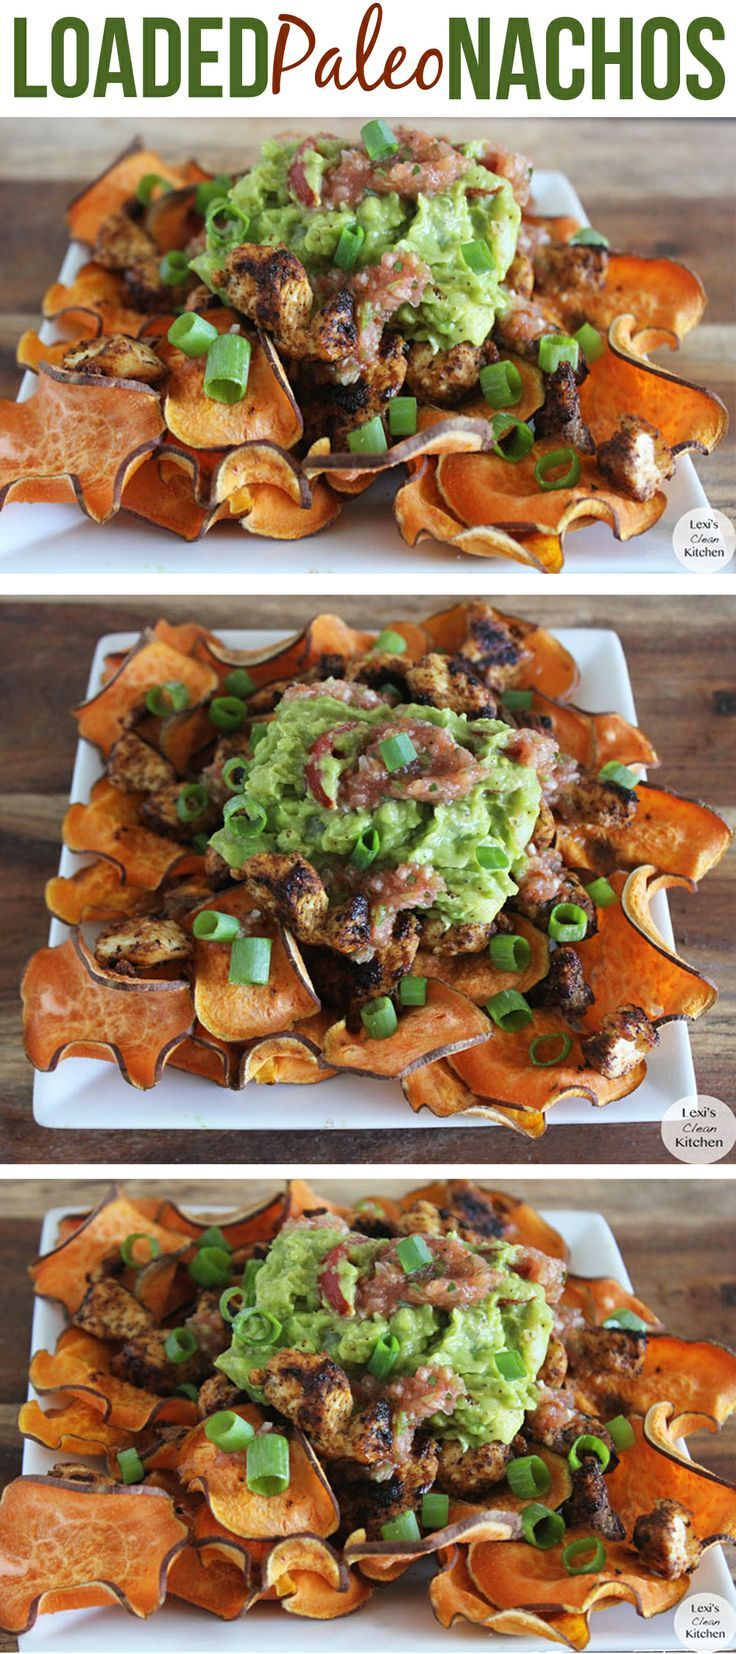 """Healthy eating recipes """"Loaded Paleo Nachos ok, so I'm not really into the paleo thing, but these actually look like they taste pretty good."""""""